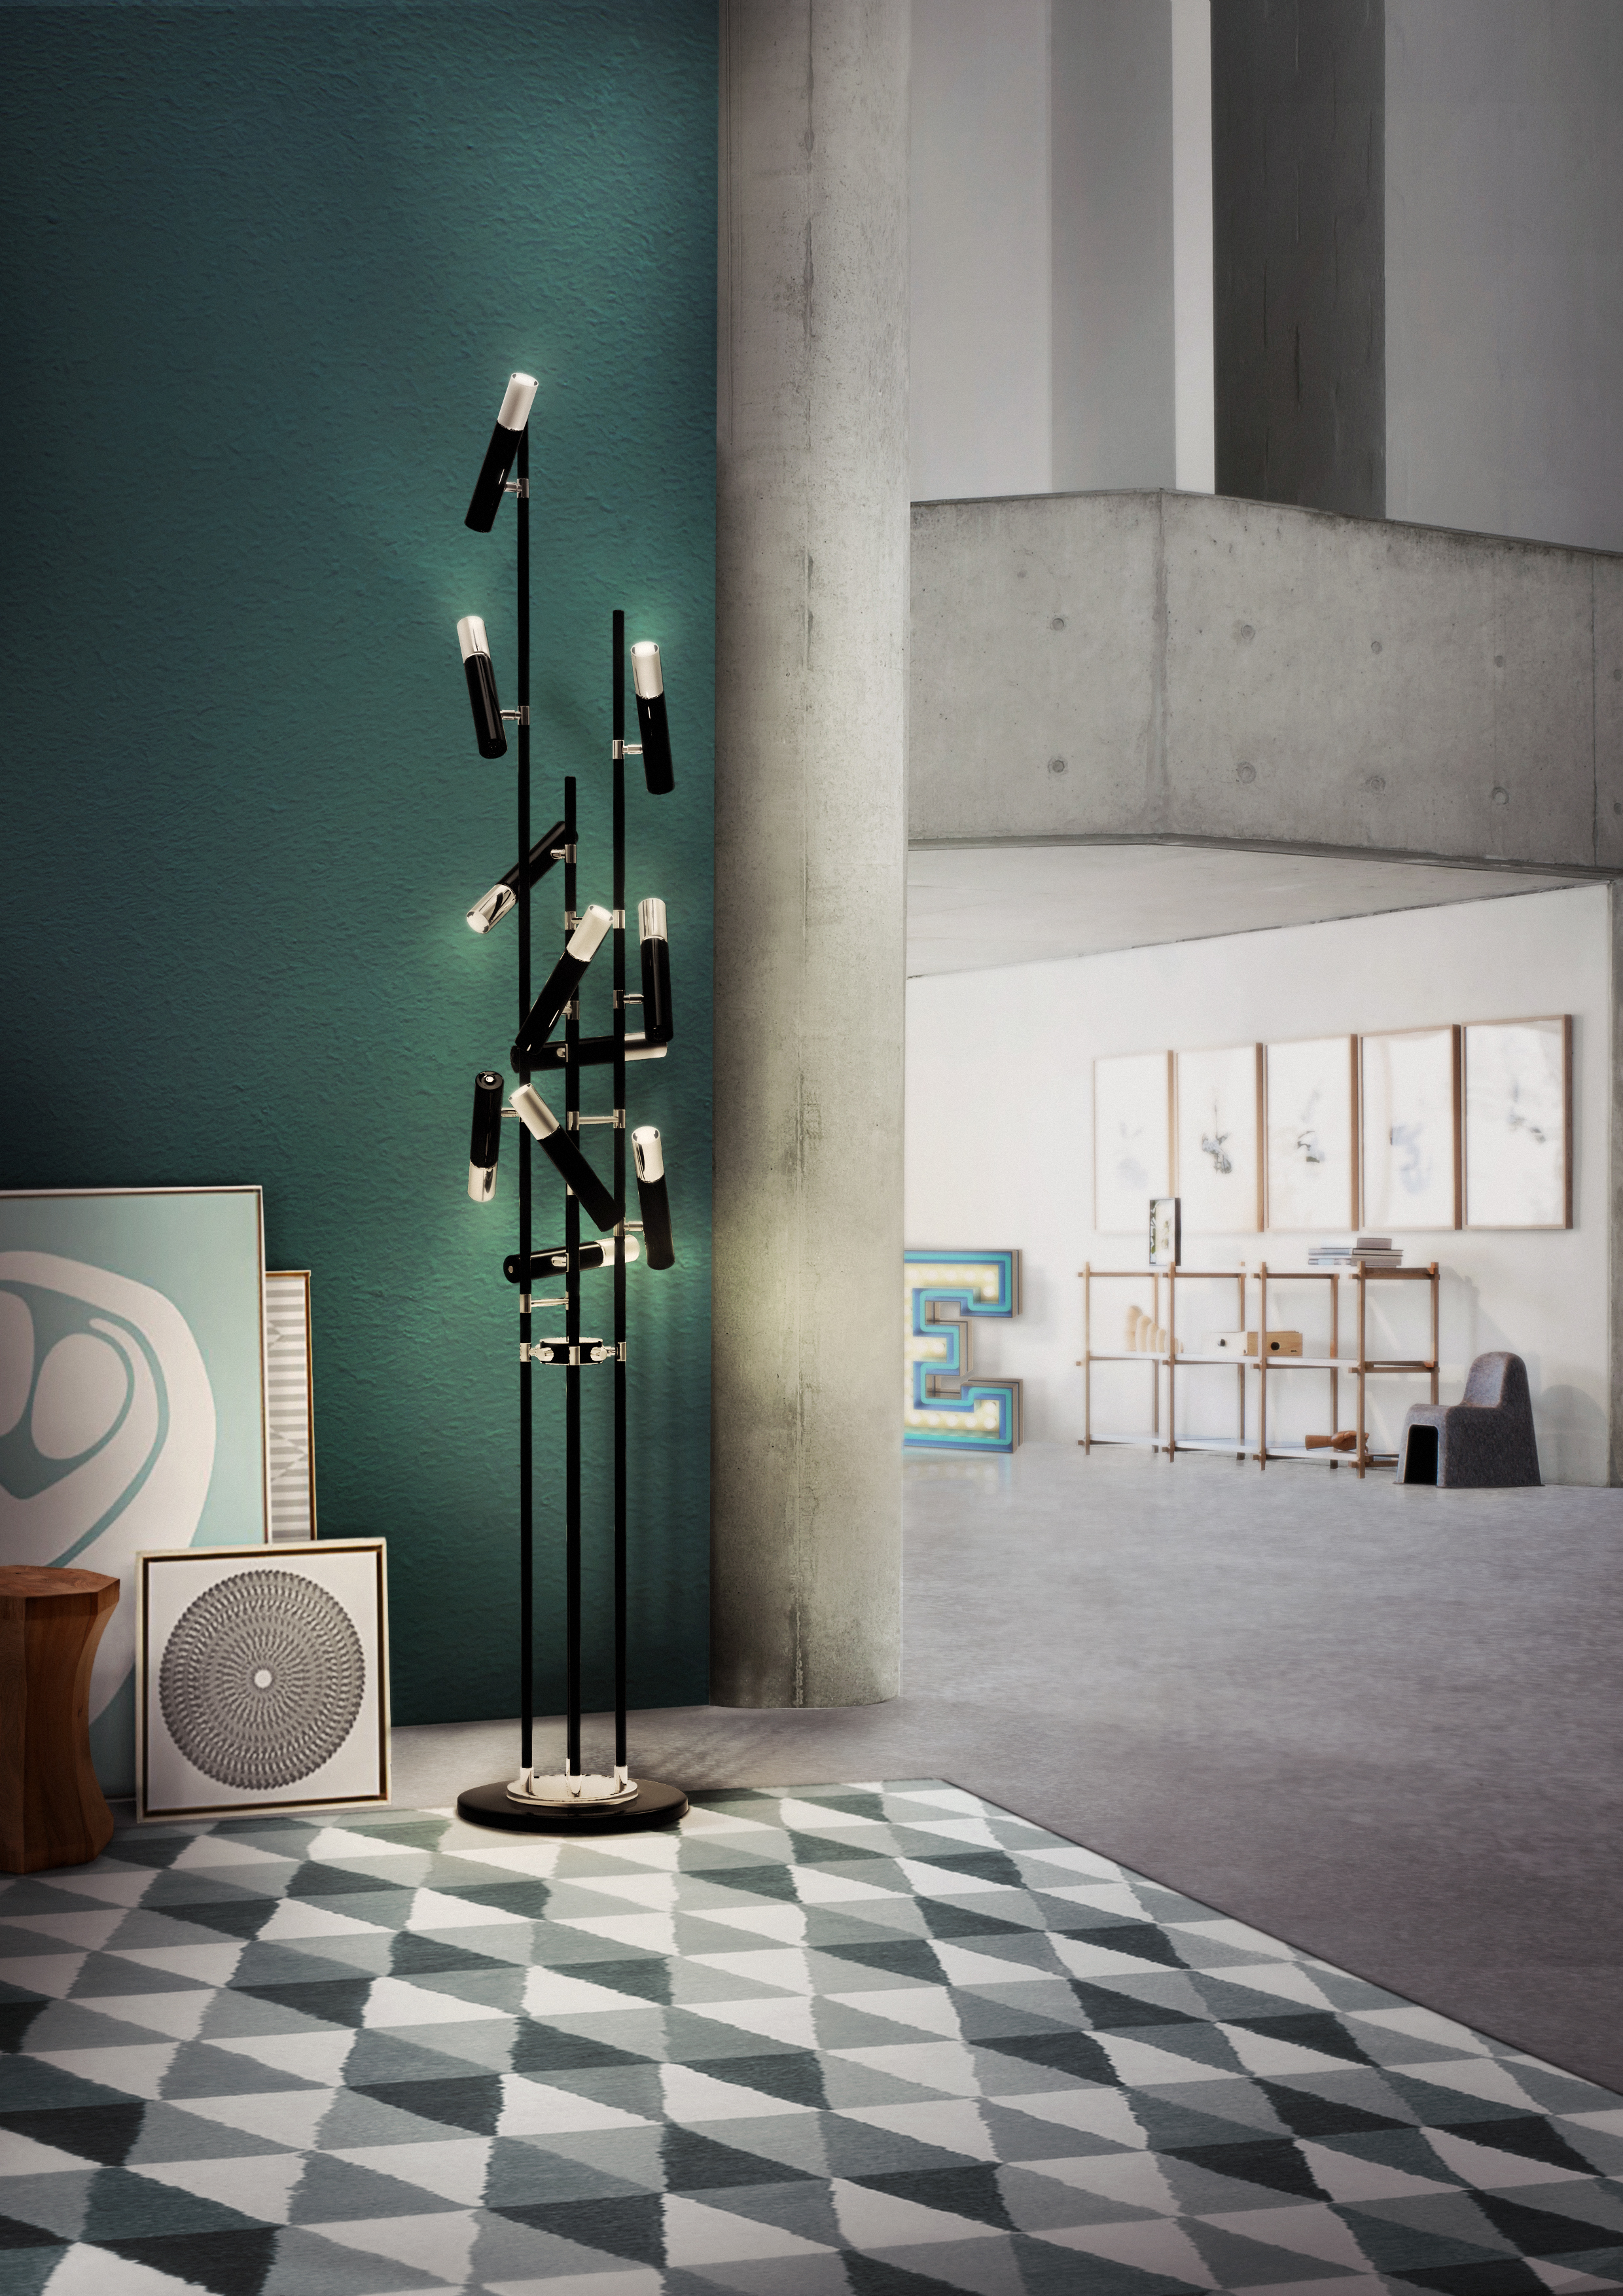 Perfect Modern Floor Lamps for a Modern and Stylish Home Design (1) modern floor lamps Perfect Modern Floor Lamps for a Stylish Home Design Perfect Modern Floor Lamps for a Modern and Stylish Home Design 1